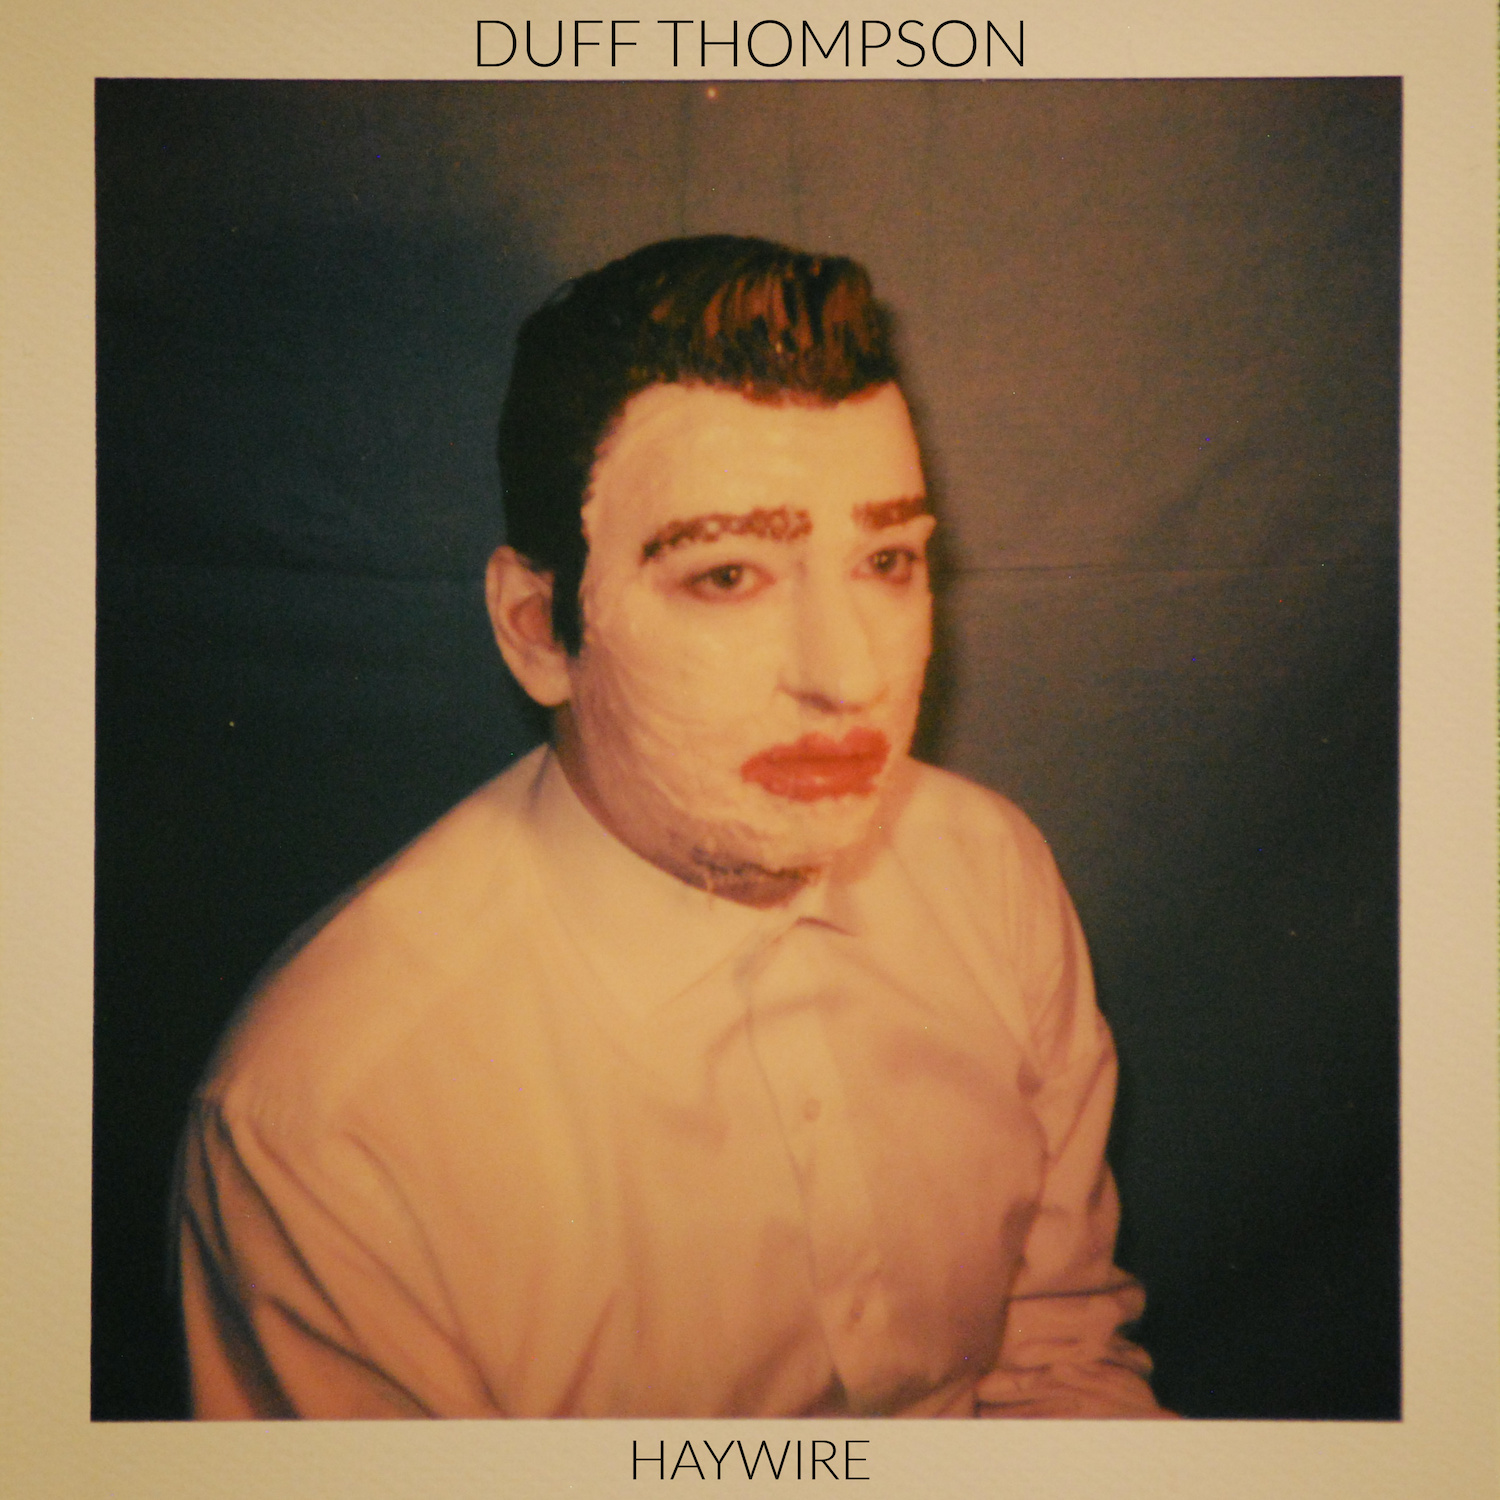 Haywire - Duff Thompson